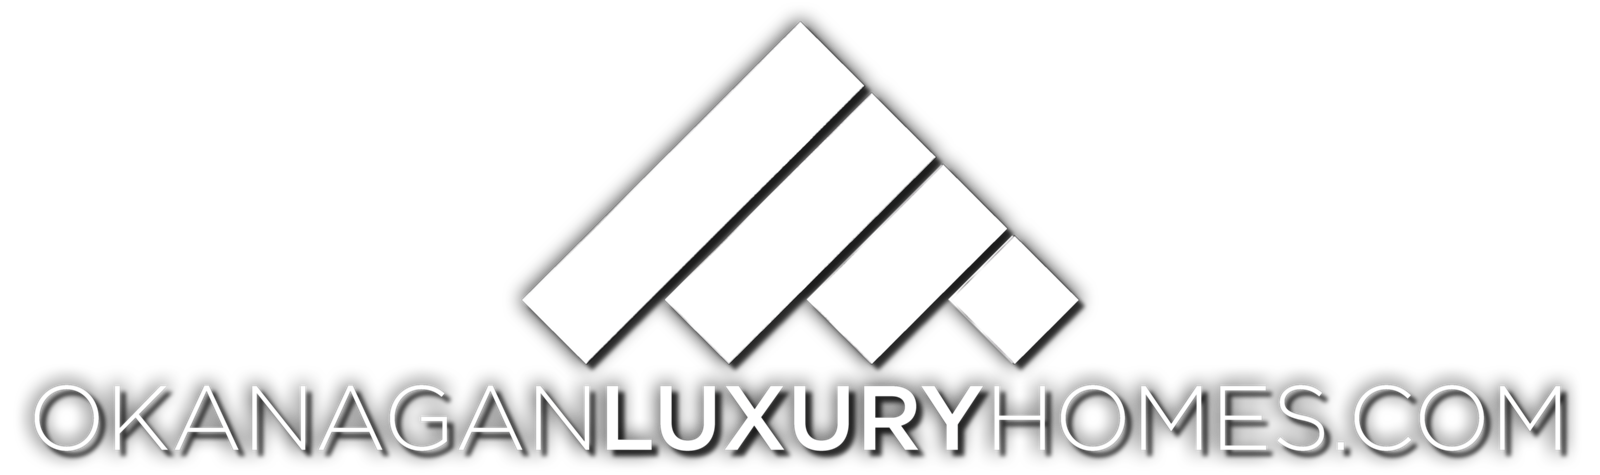 Okanagan Luxury Homes Logo